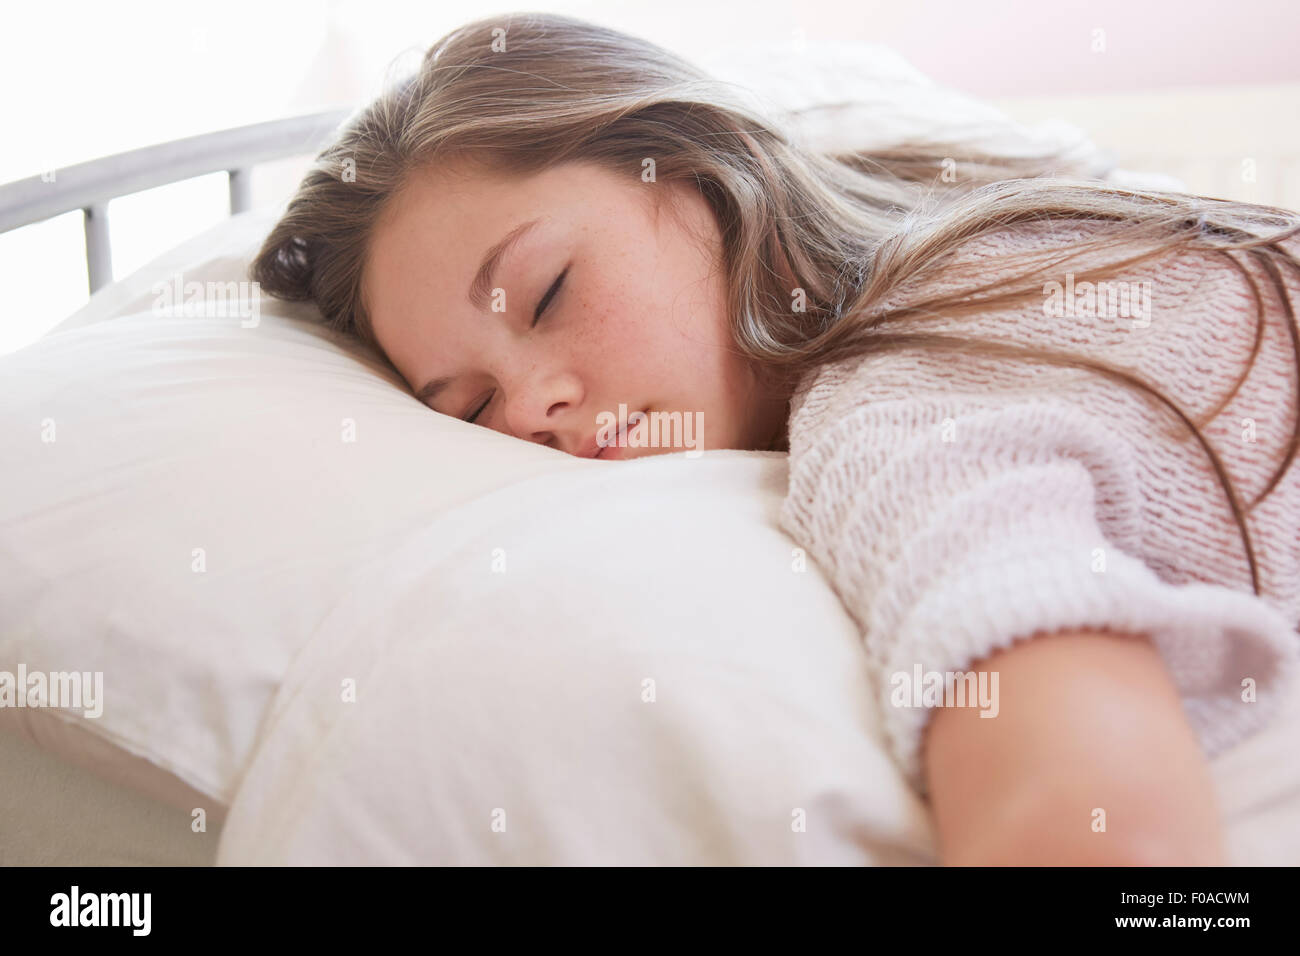 Girl lying on bed asleep - Stock Image